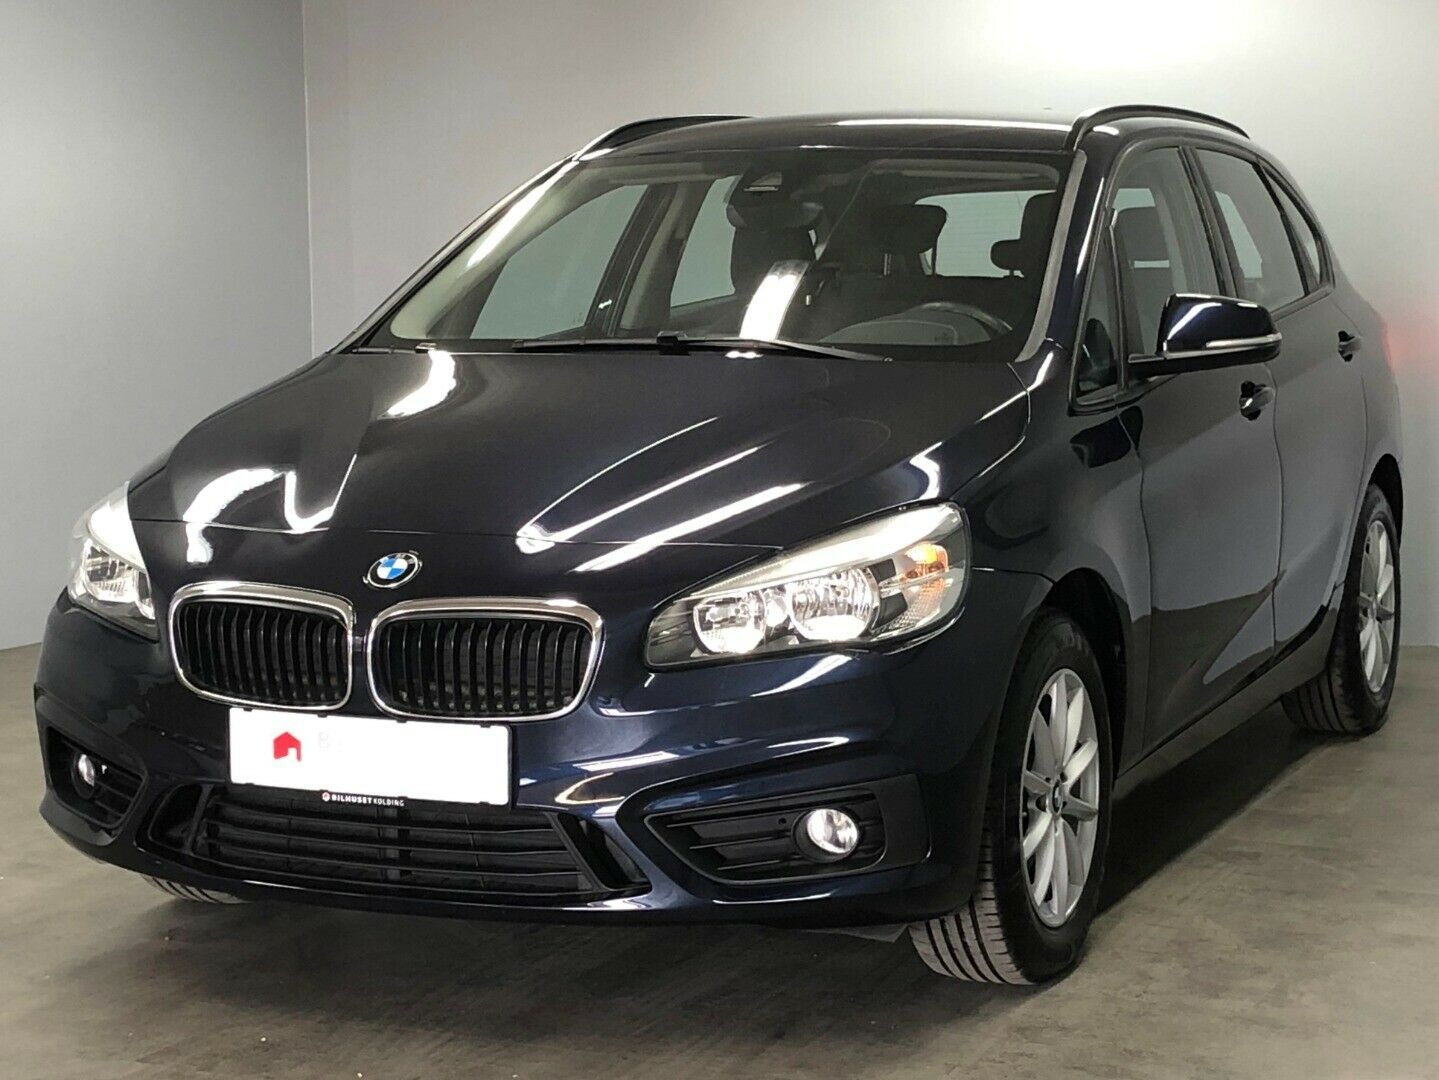 BMW 218d 2,0 Active Tourer Advantage aut. 5d - 254.900 kr.